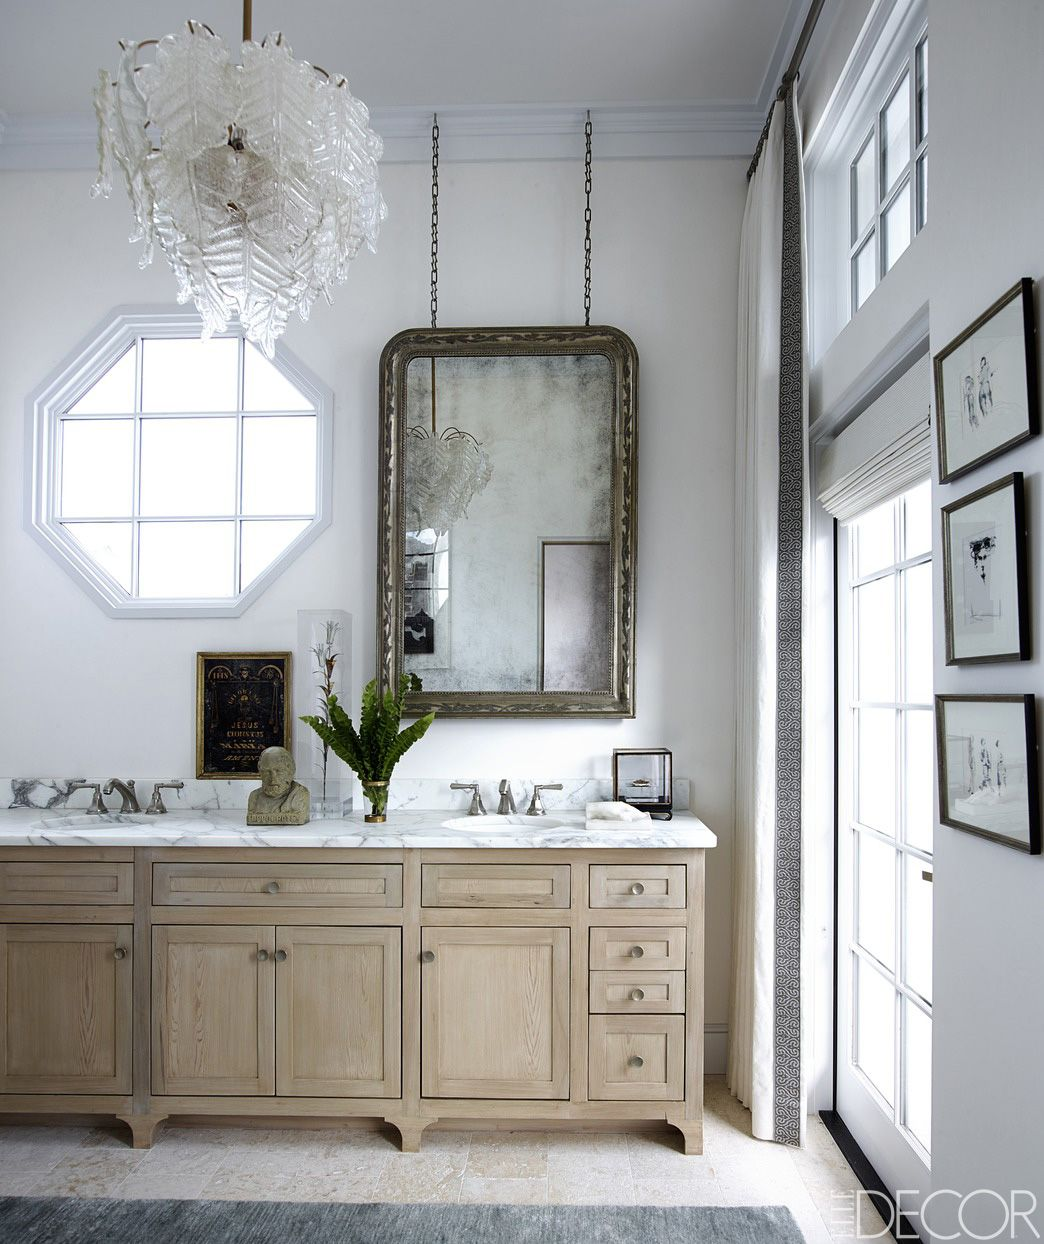 Great Bathroom Vanity Lighting 50 bathroom lighting ideas for every style - modern light fixtures